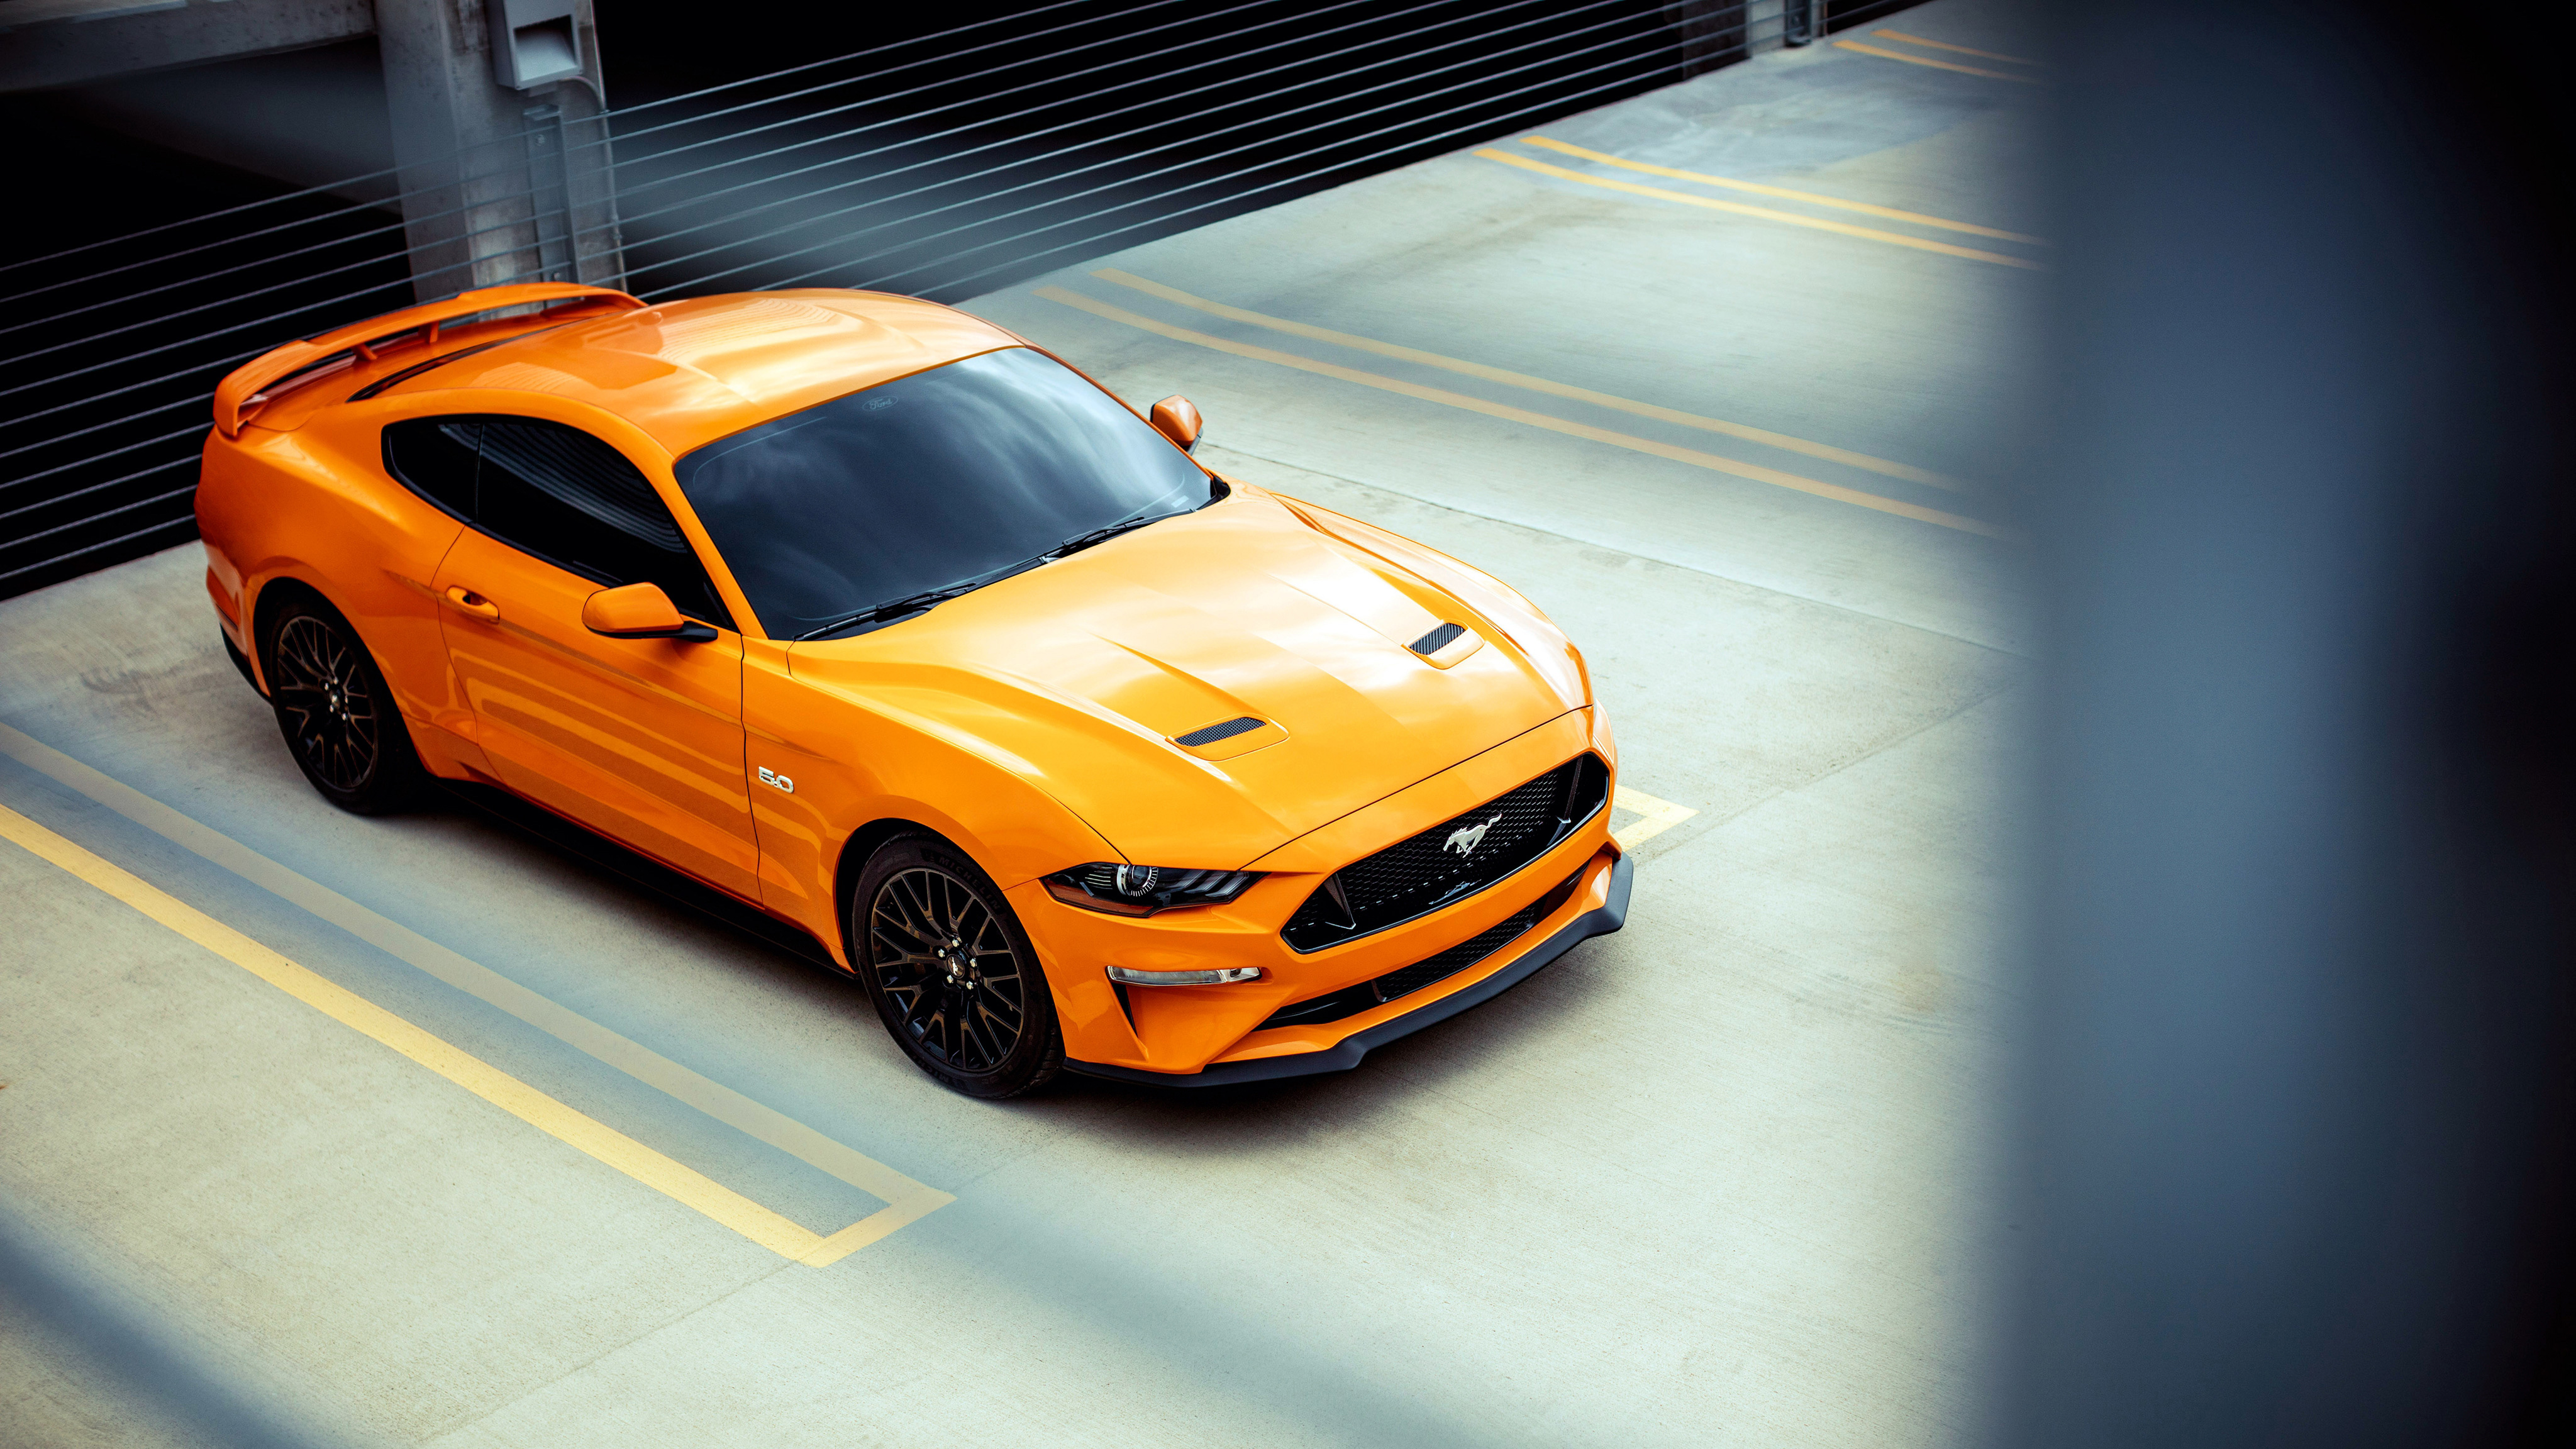 Wallpaper Ford Mustang 2018 Hd Automotive Cars 5863: 2018 Ford Mustang GT Fastback Sports Car 4K Wallpaper